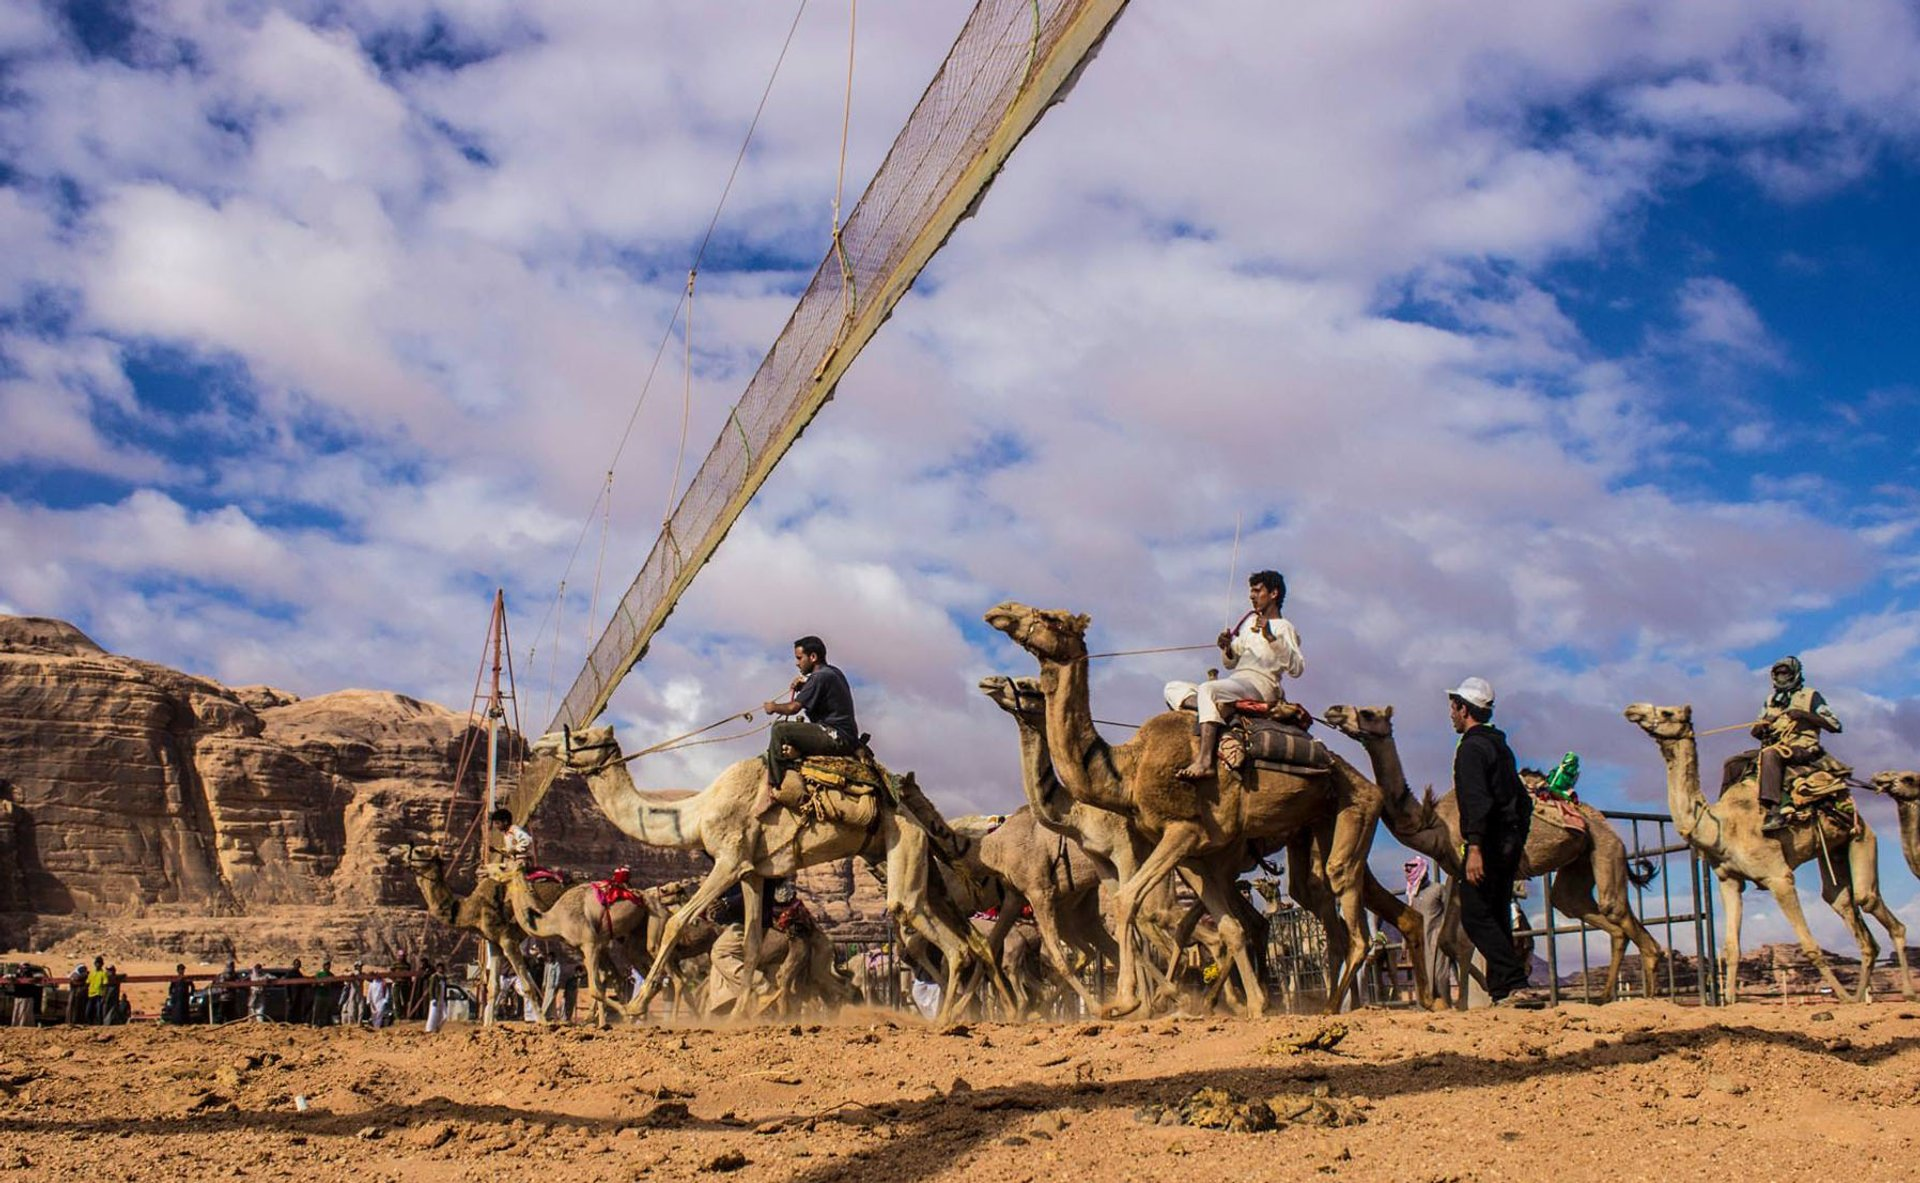 Camel Races in Jordan - Best Season 2019